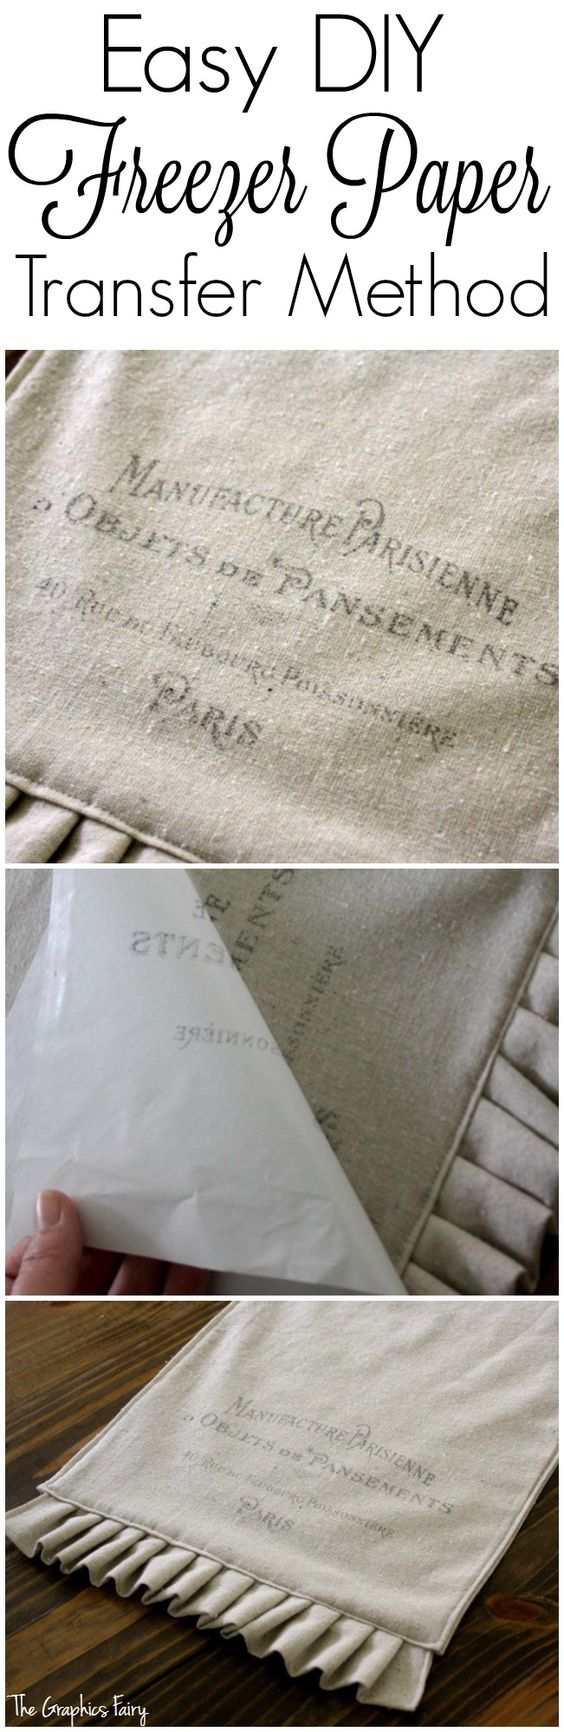 Easy DIY Freezer Paper Transfer.